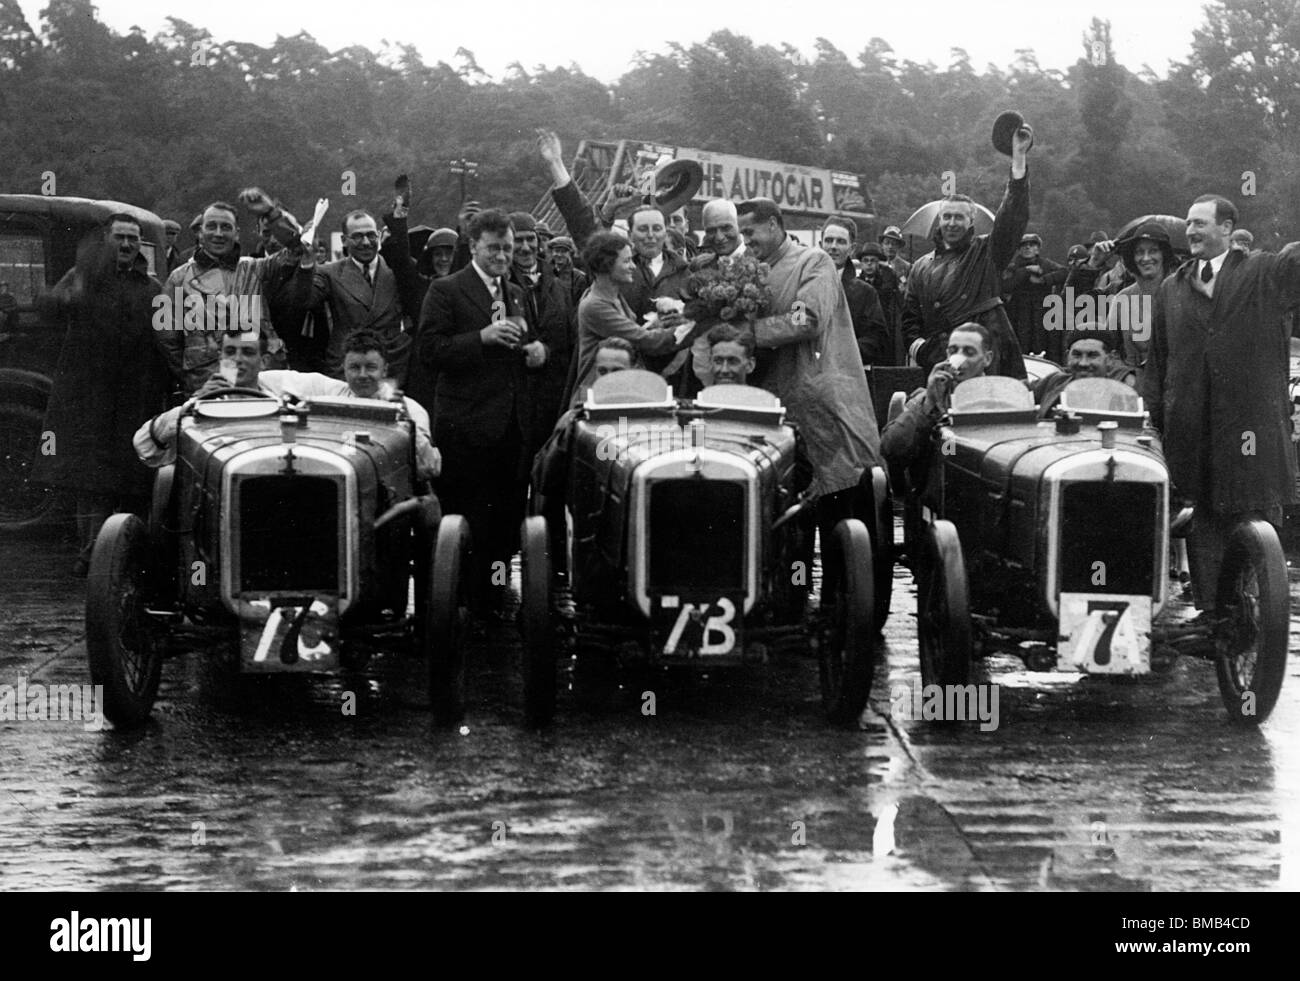 Austin 7 Ulster works team at Brooklands 1930 - Stock Image